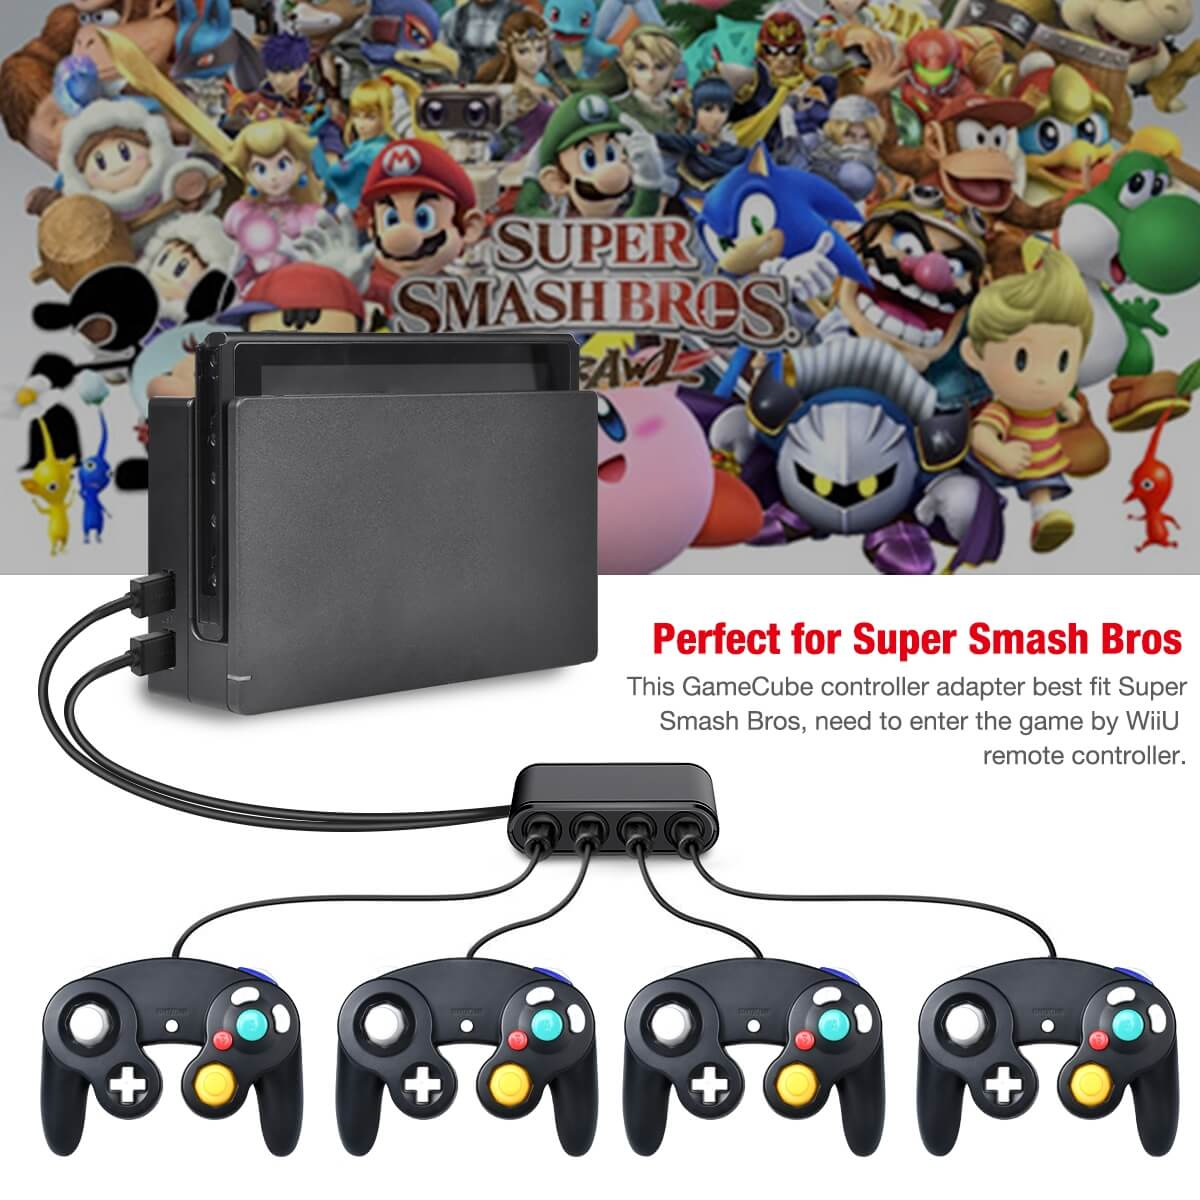 Super Smash Bros GameCube NGC Controller Adapter (3)